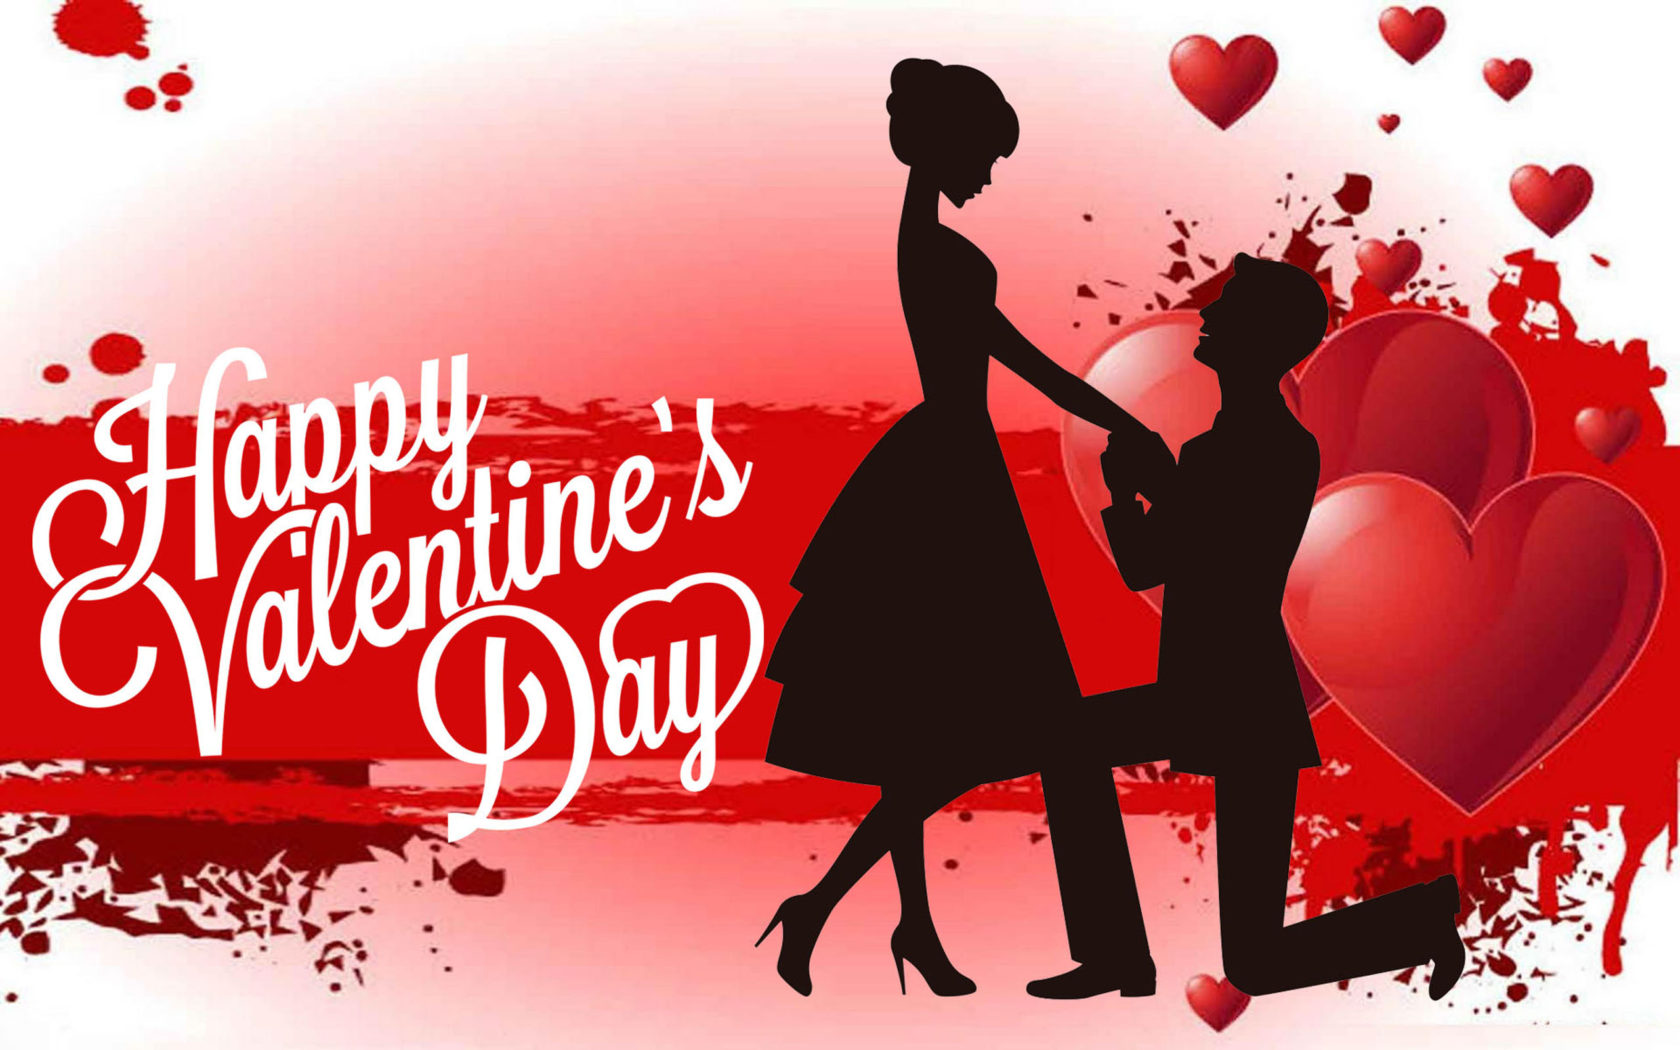 New Sad Girl Wallpaper Happy Valentines Day Red Heart Love Couple Photos For